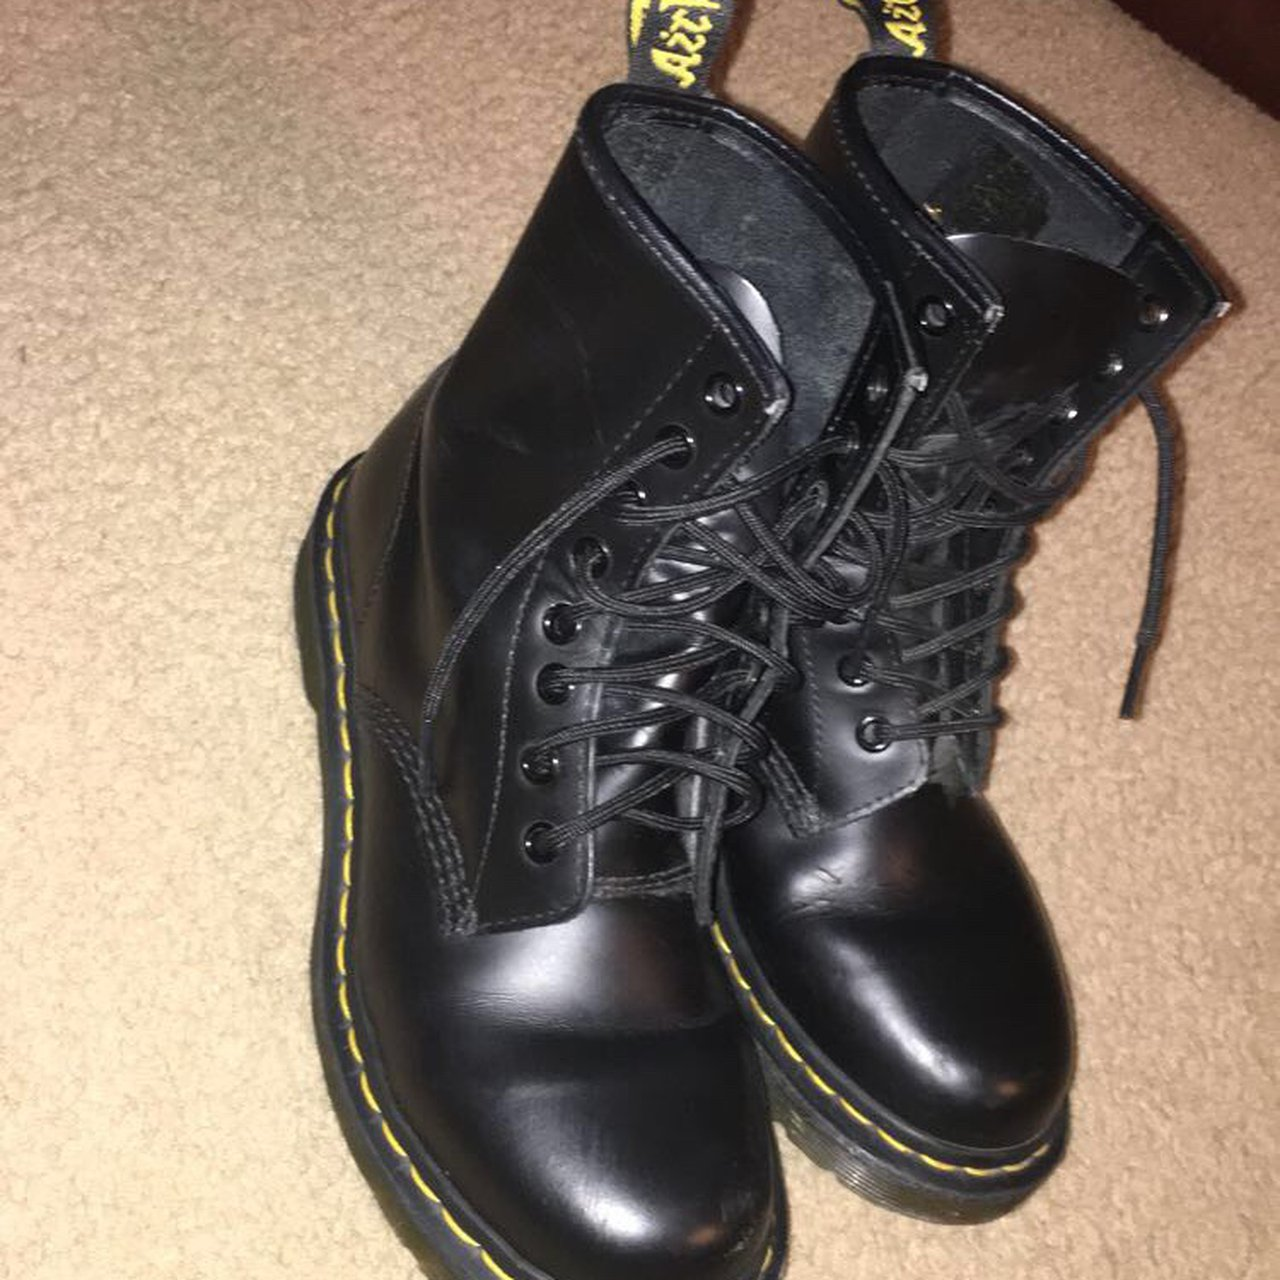 Used Dr. Martens size 7 women's! These